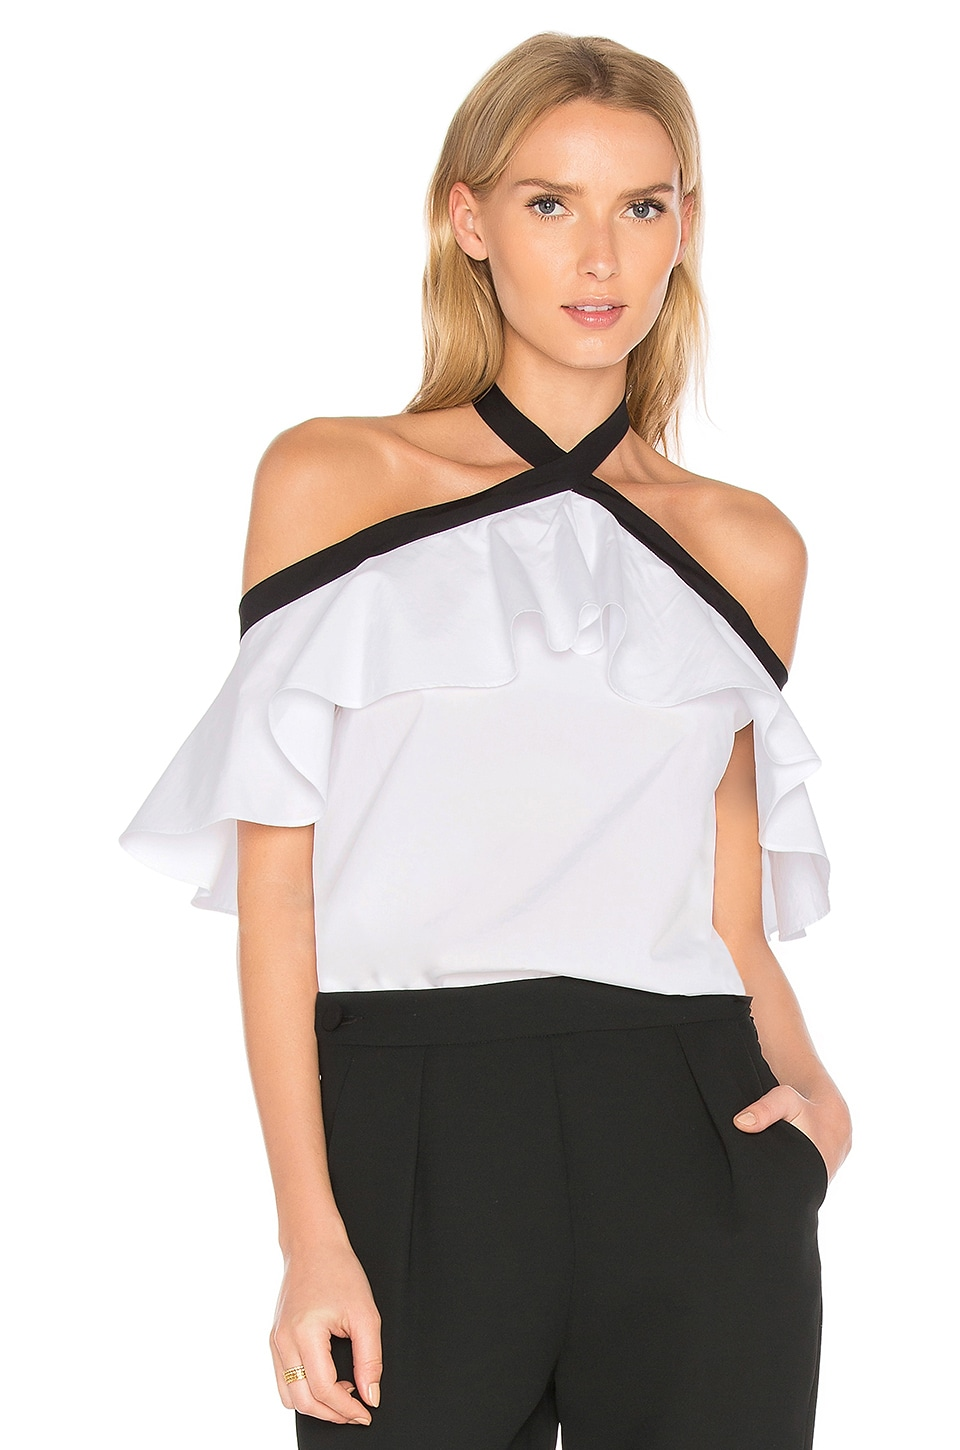 Alice + Olivia Alyssa Top in White & Black